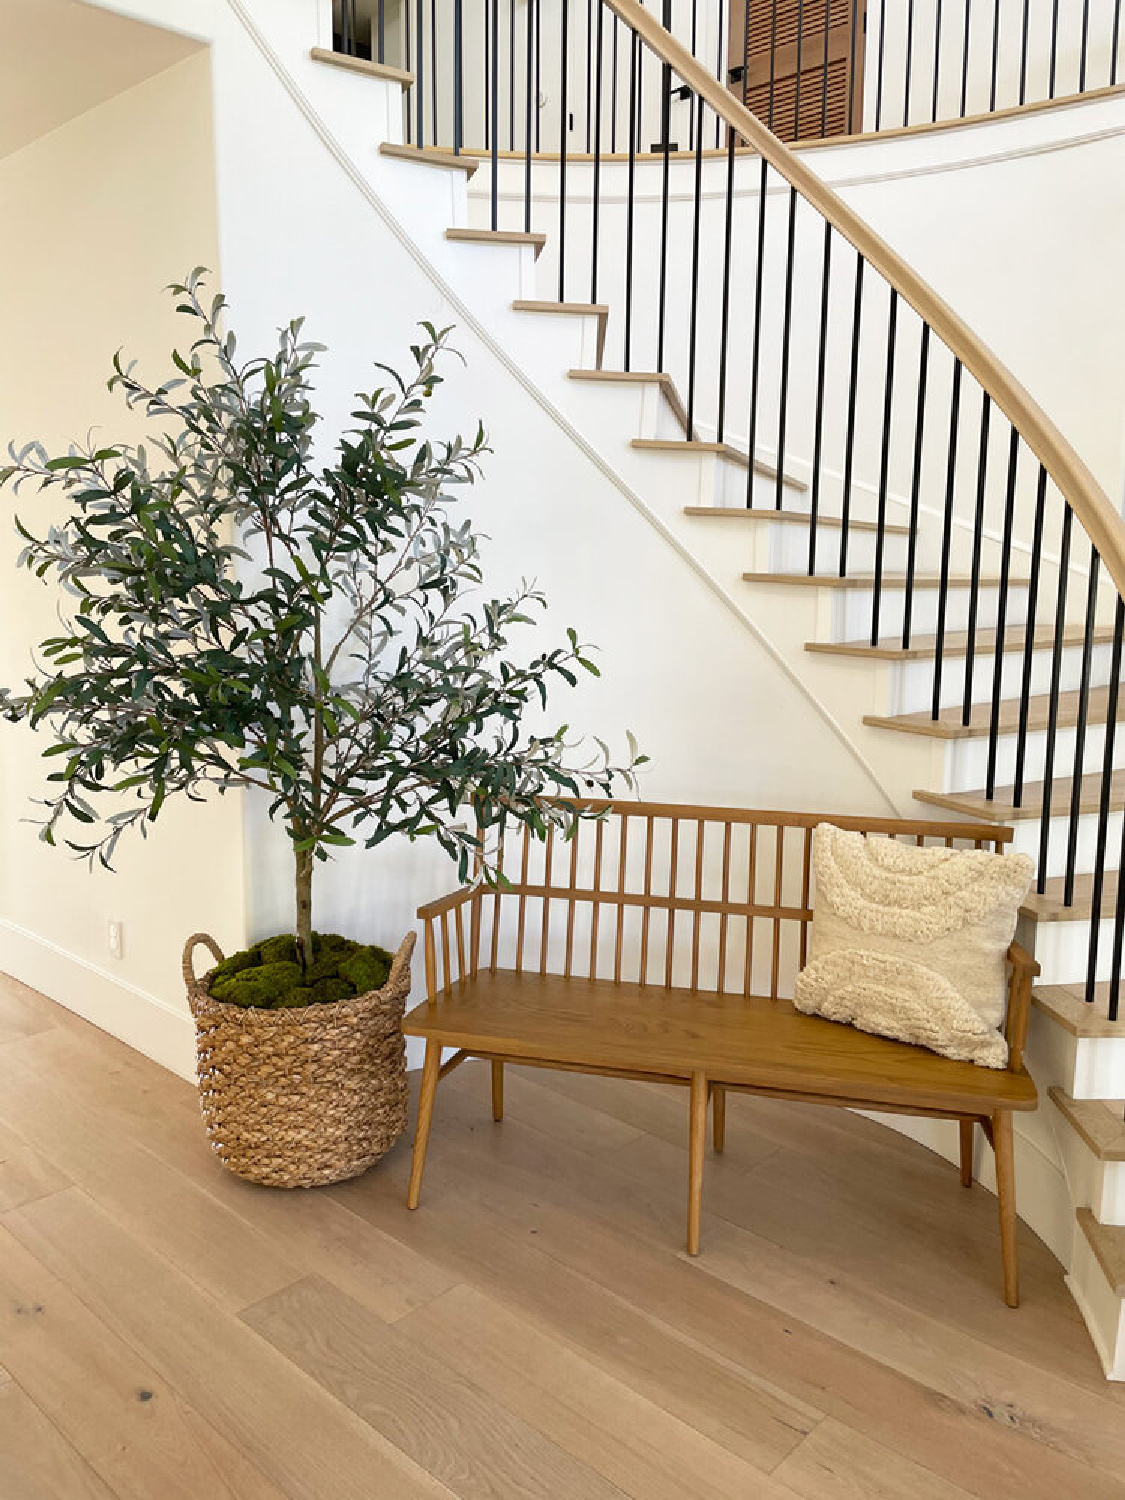 Neutral, Modern French style staircase and entry with bench and potted tree - design by AR Interiors (Anna Rosemann).